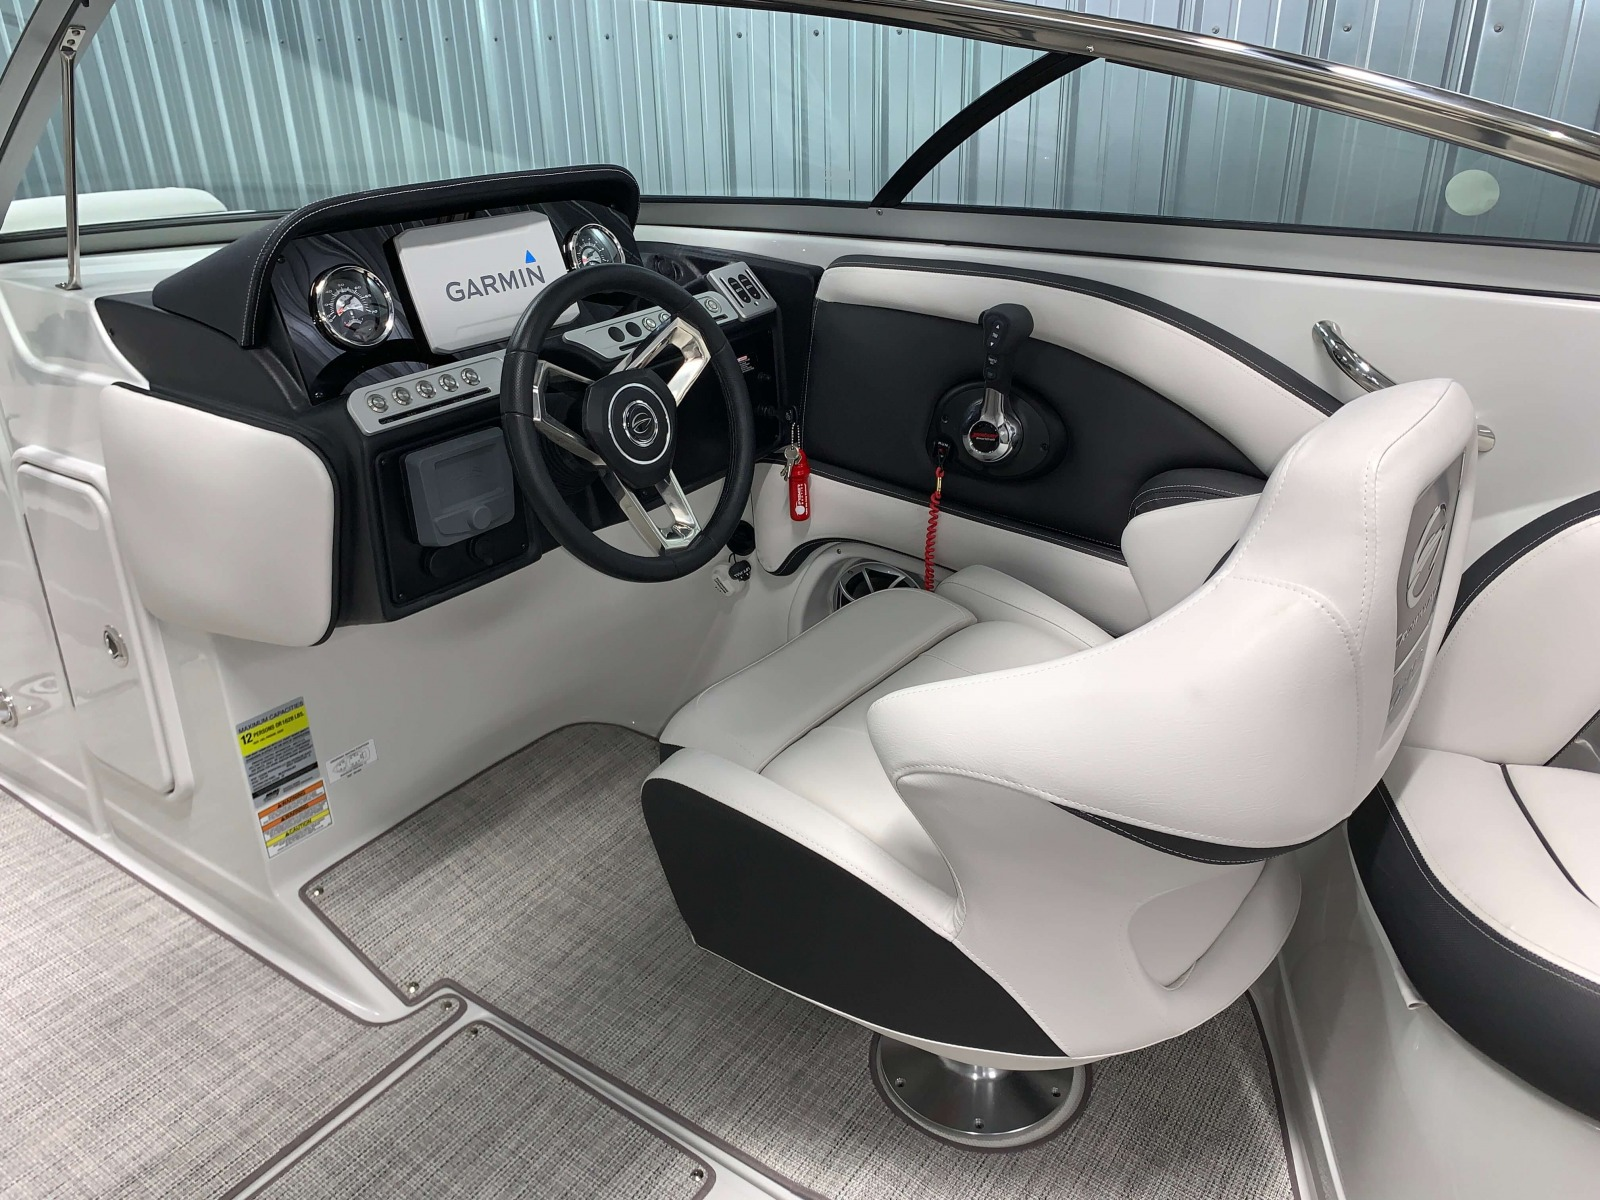 Helm with Black Accents of the 2021 Crownline 255 SS Bowrider Boat